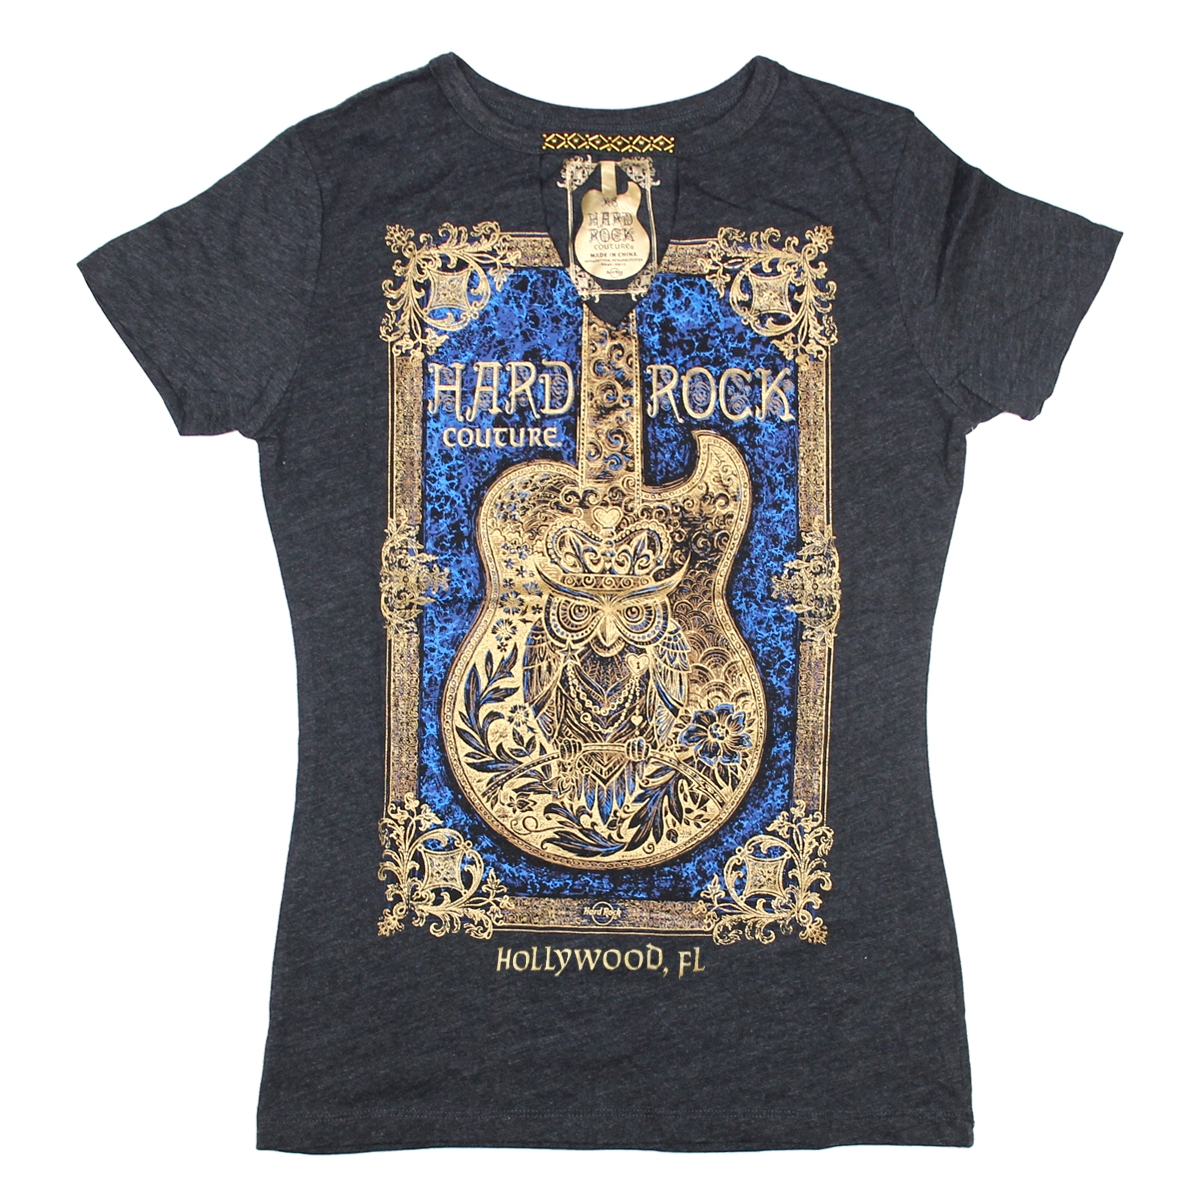 Ladies Couture Framed Guitar Tee Hollywood FL 0